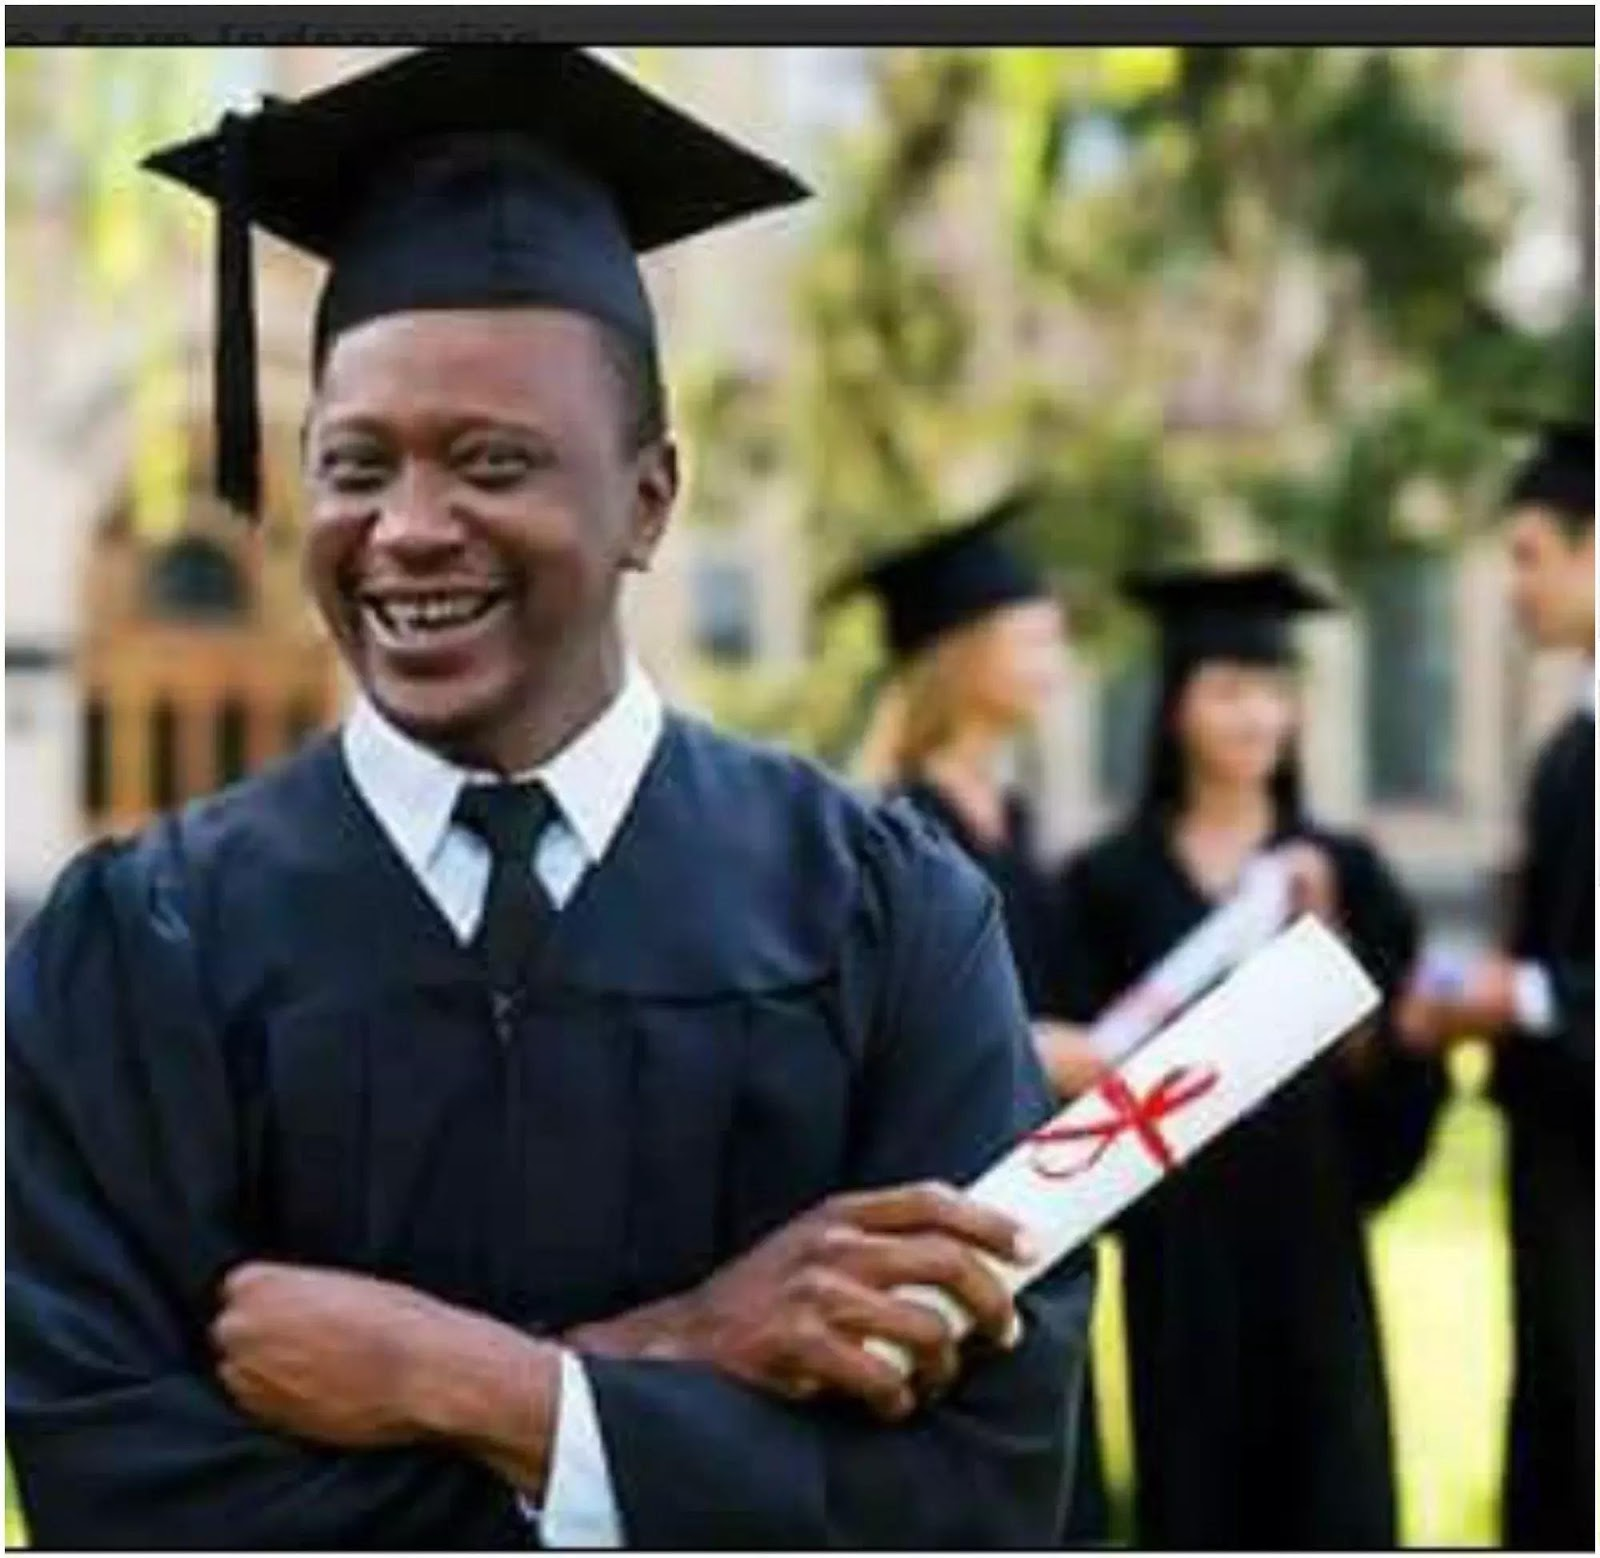 daily post did uhuru really graduate from amherst college here did uhuru really graduate from amherst college here is the painful truth photo